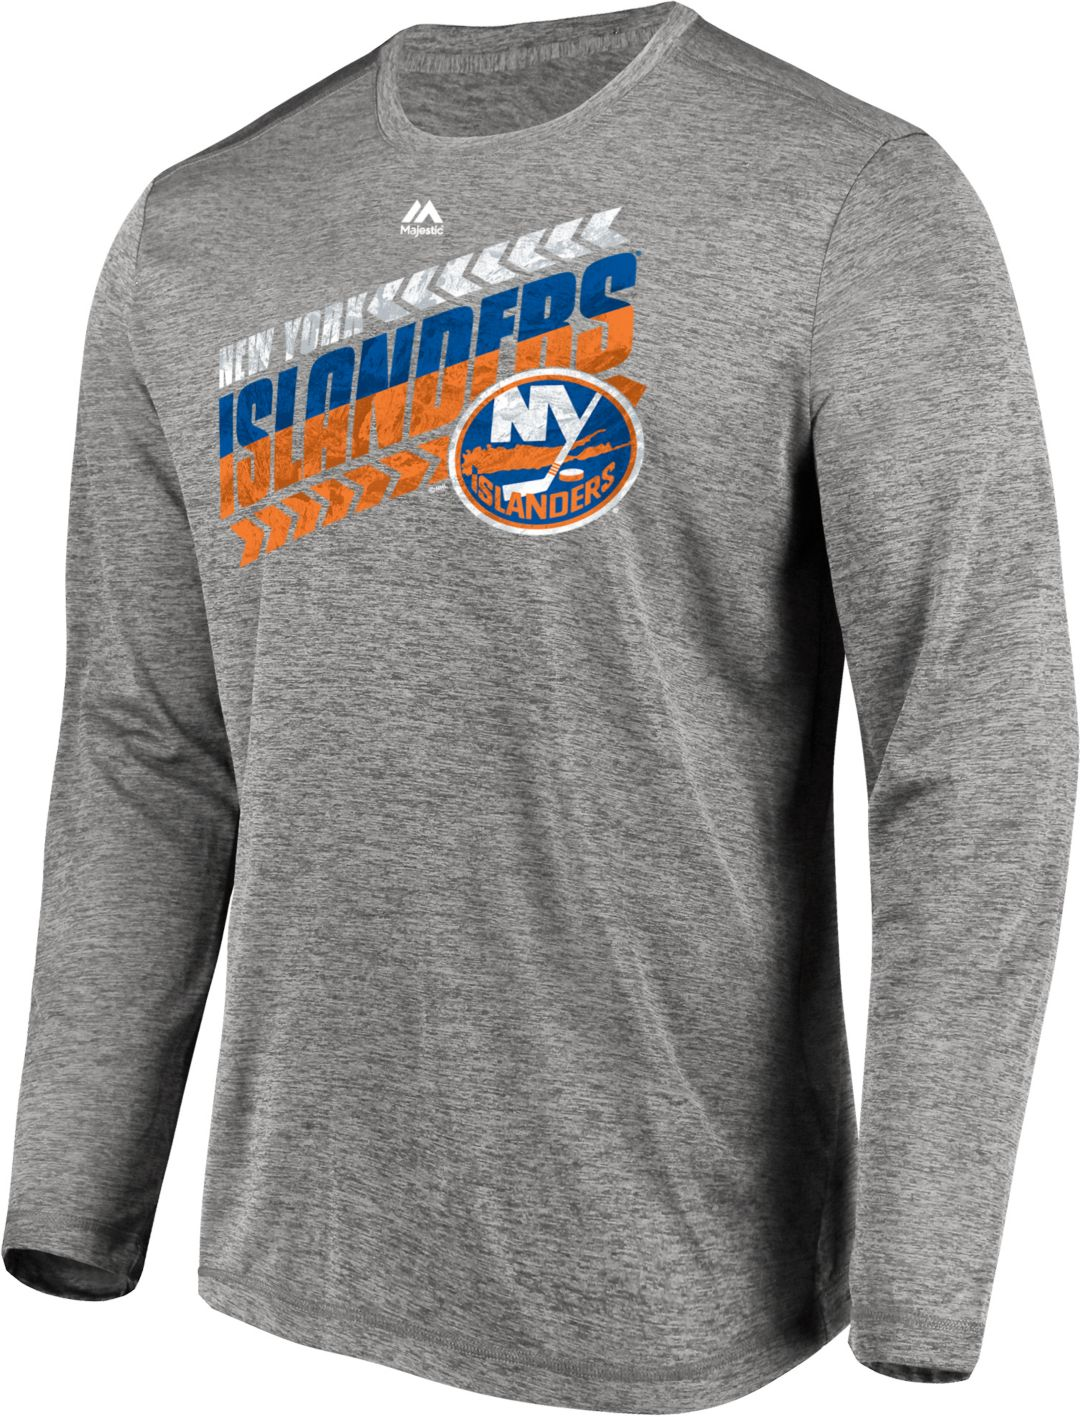 promo code 538d2 59b60 Majestic Men's New York Islanders Centre Performance Heather Grey Long  Sleeve Shirt